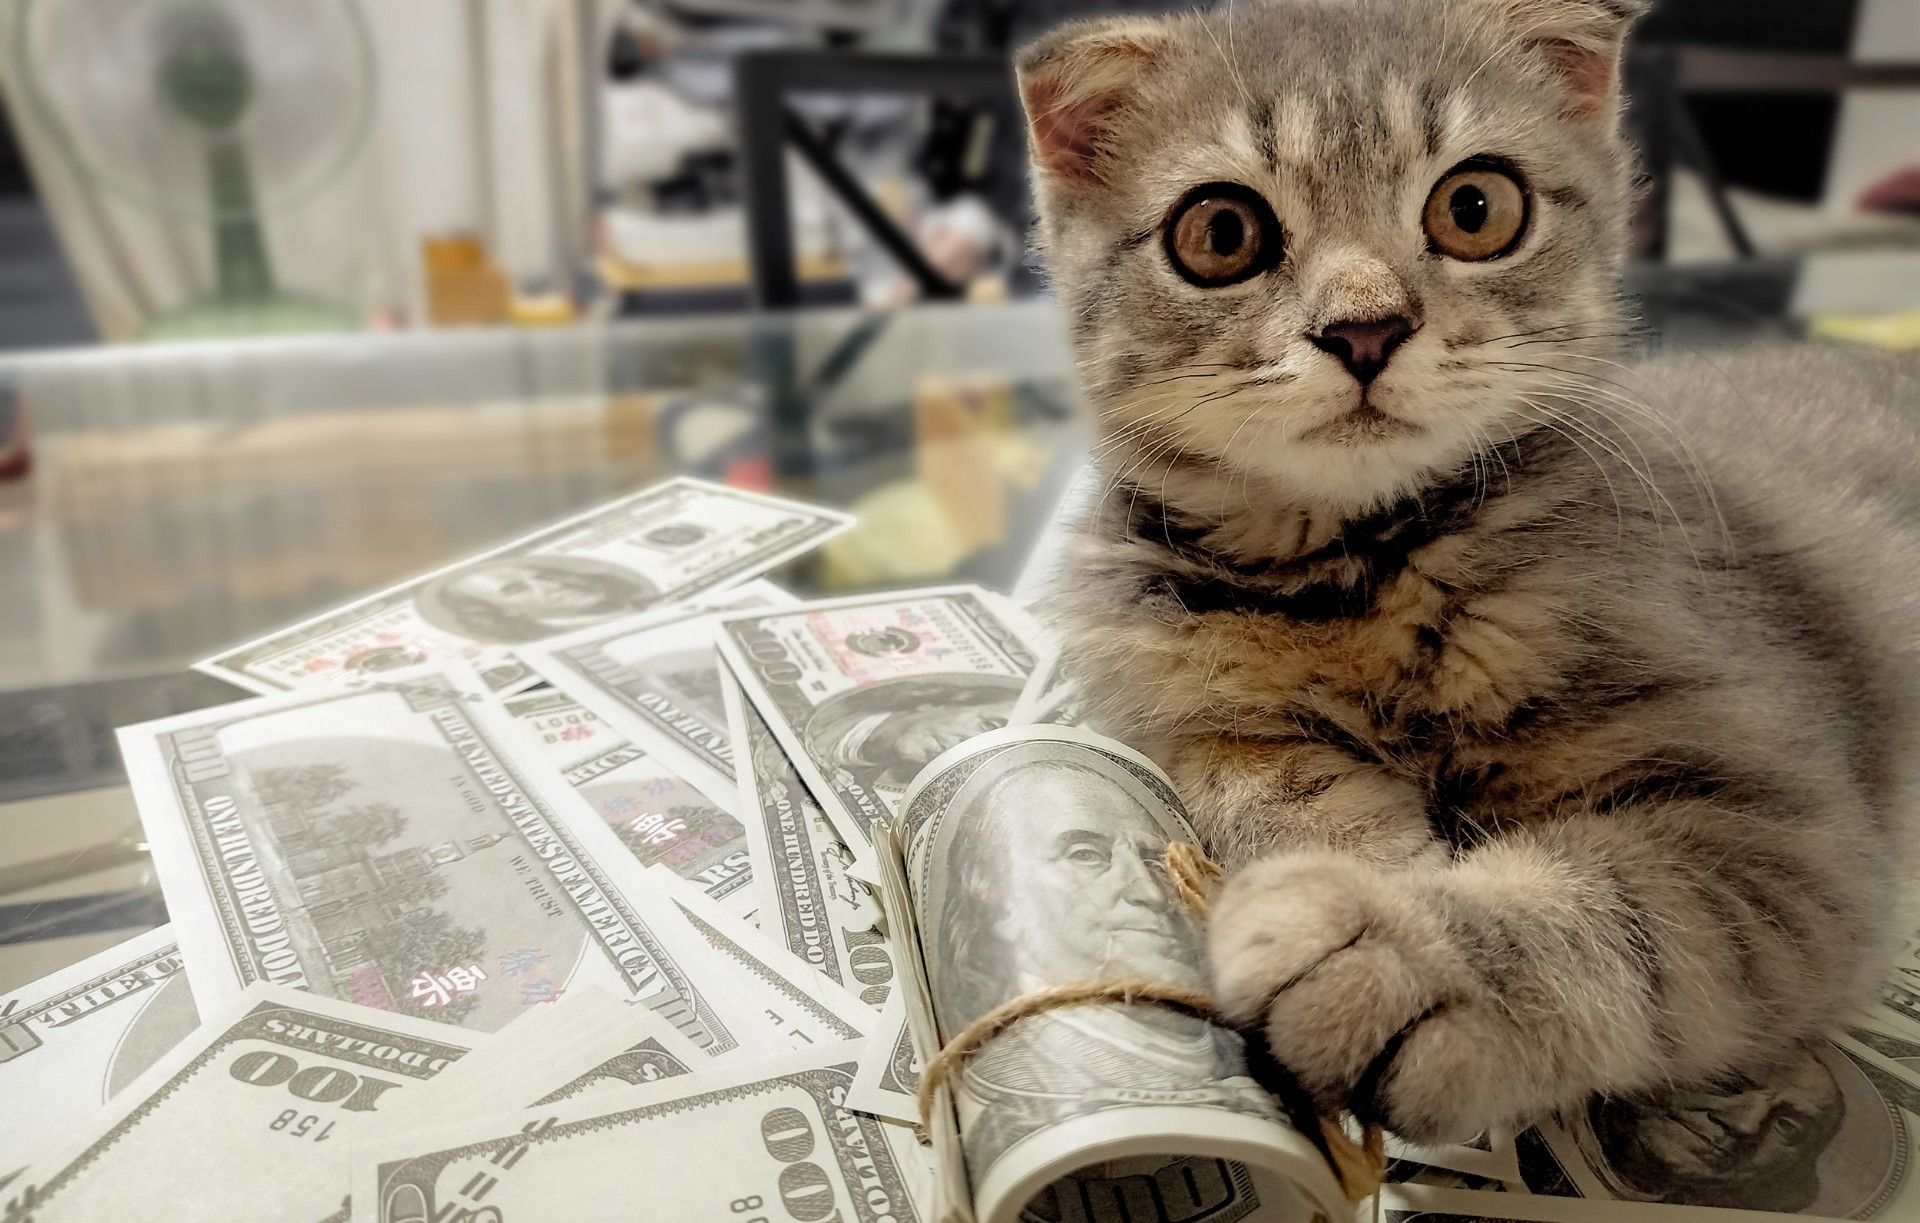 Cat holds rolls of hundred dollar bills away from person.